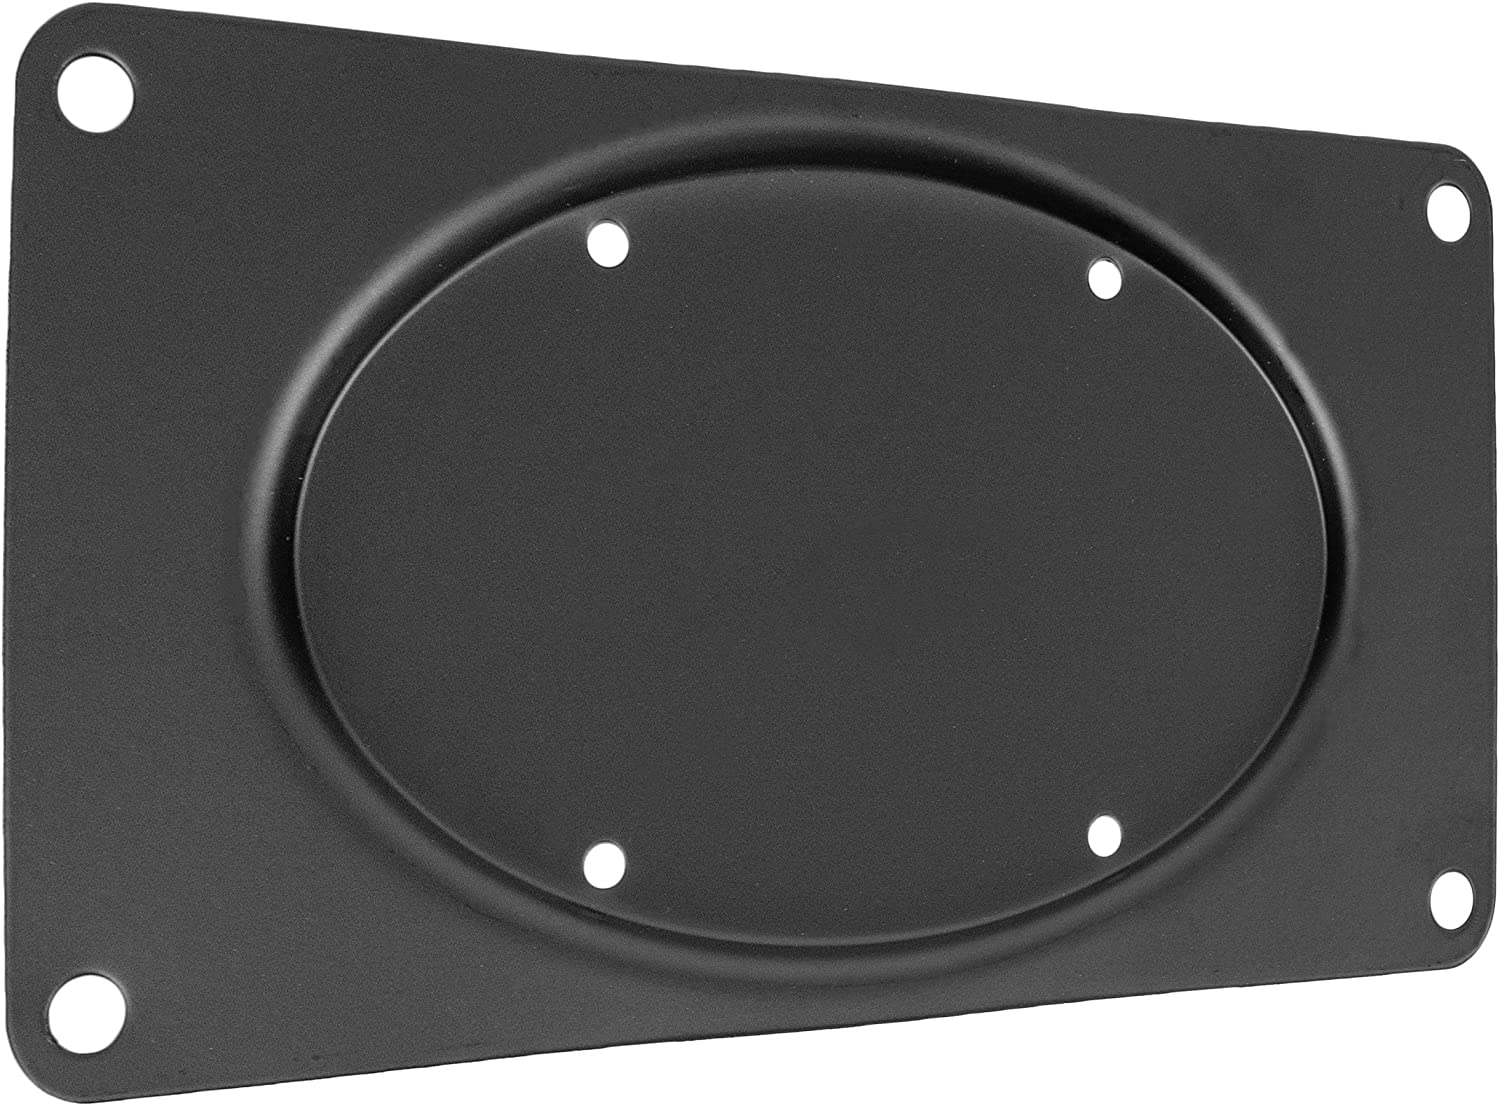 VIVO Steel VESA Monitor Mount Adapter Plate for Monitor Screens up to 43 inches, Conversion Kit for VESA 200x100 (MOUNT-AD2X1)